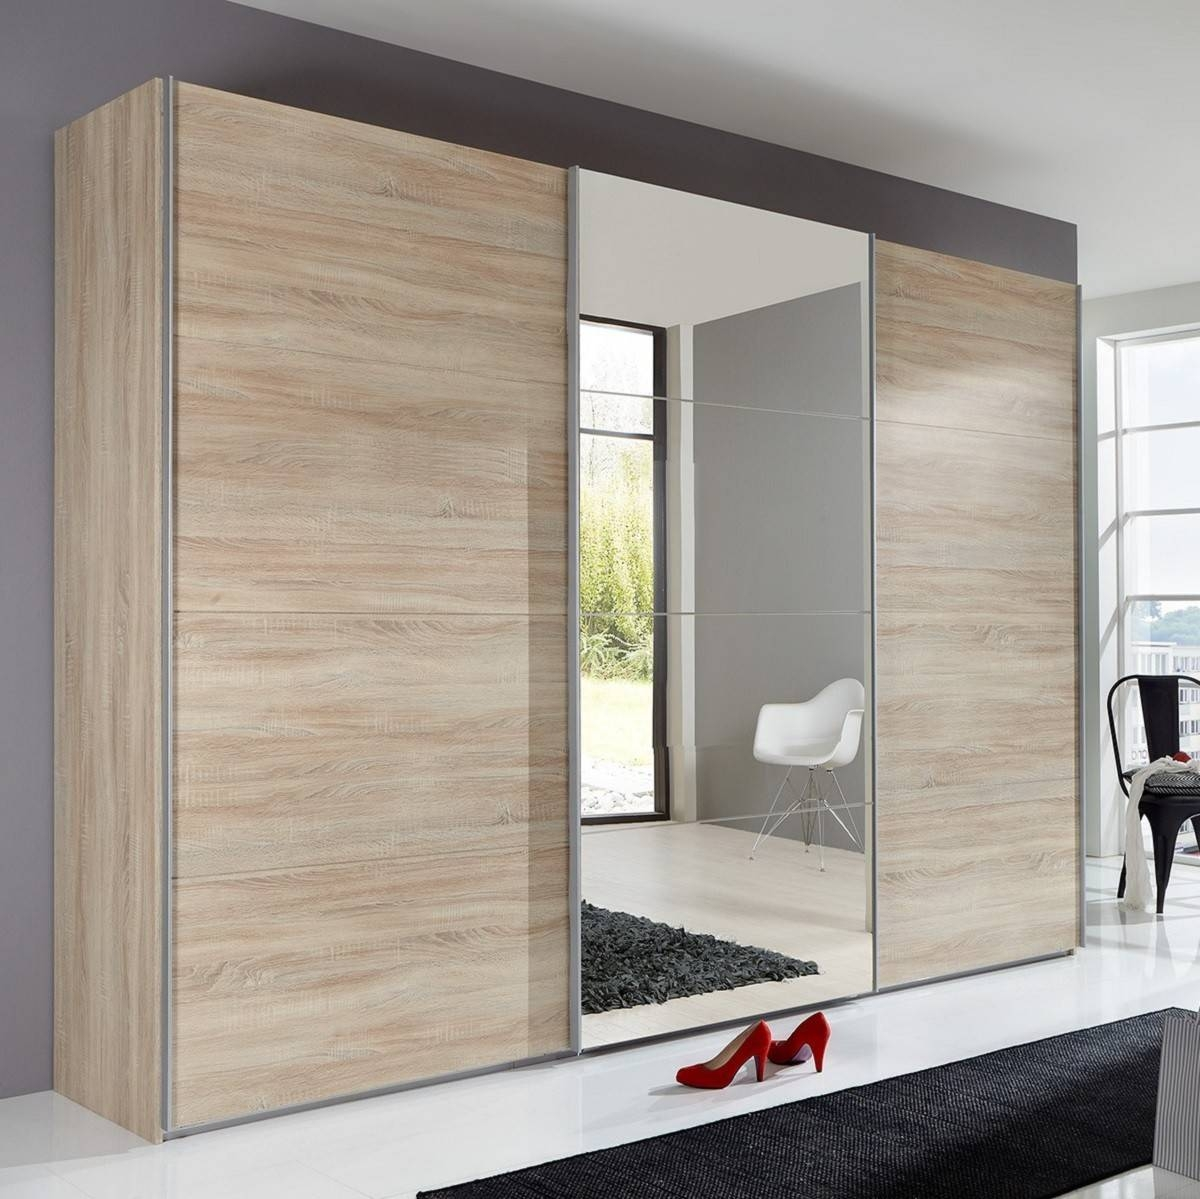 Slumberhaus 'ernie' German Made Modern 270Cm Oak & Mirror 3 Door for 3 Doors Wardrobes With Mirror (Image 13 of 15)